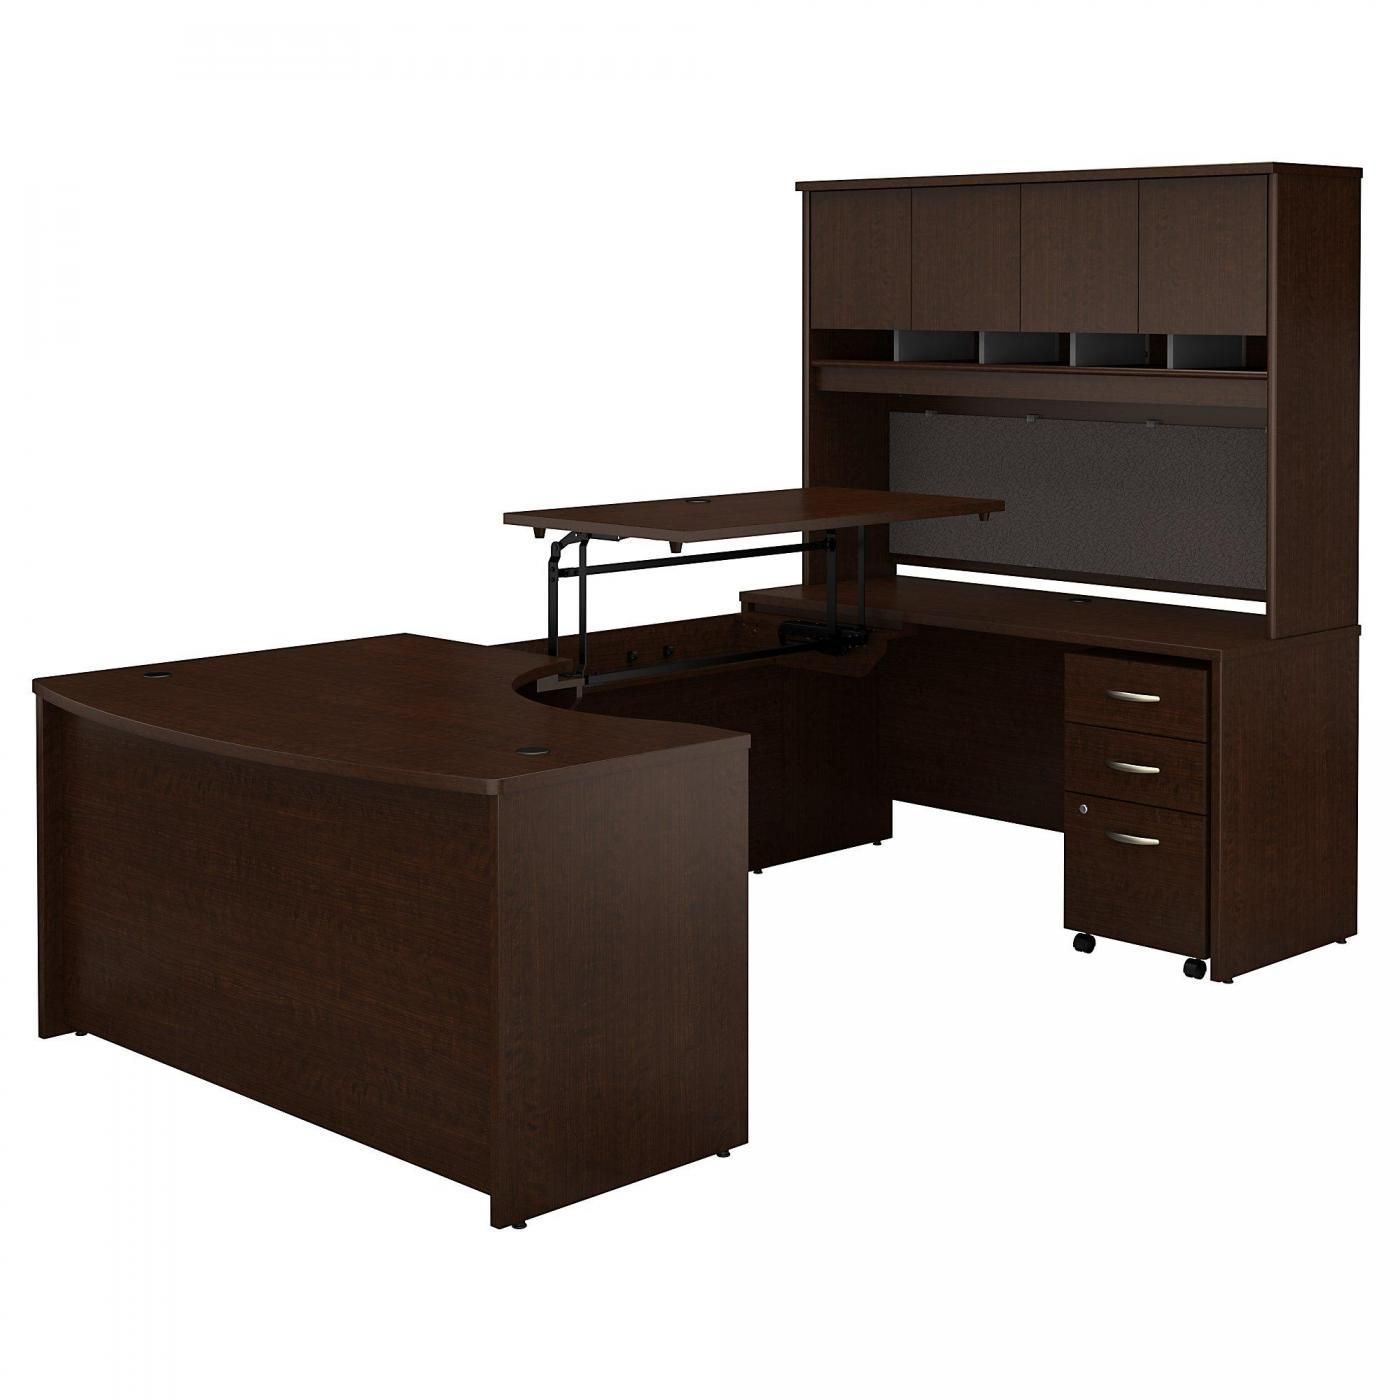 </b></font><b>BUSH BUSINESS FURNITURE SERIES C 60W X 43D LEFT HAND 3 POSITION SIT TO STAND U SHAPED DESK WITH HUTCH AND MOBILE FILE CABINET. FREE SHIPPING. VIDEO:</b></font>  VIDEO BELOW. <p>RATING:&#11088;&#11088;&#11088;&#11088;</b></font></b>